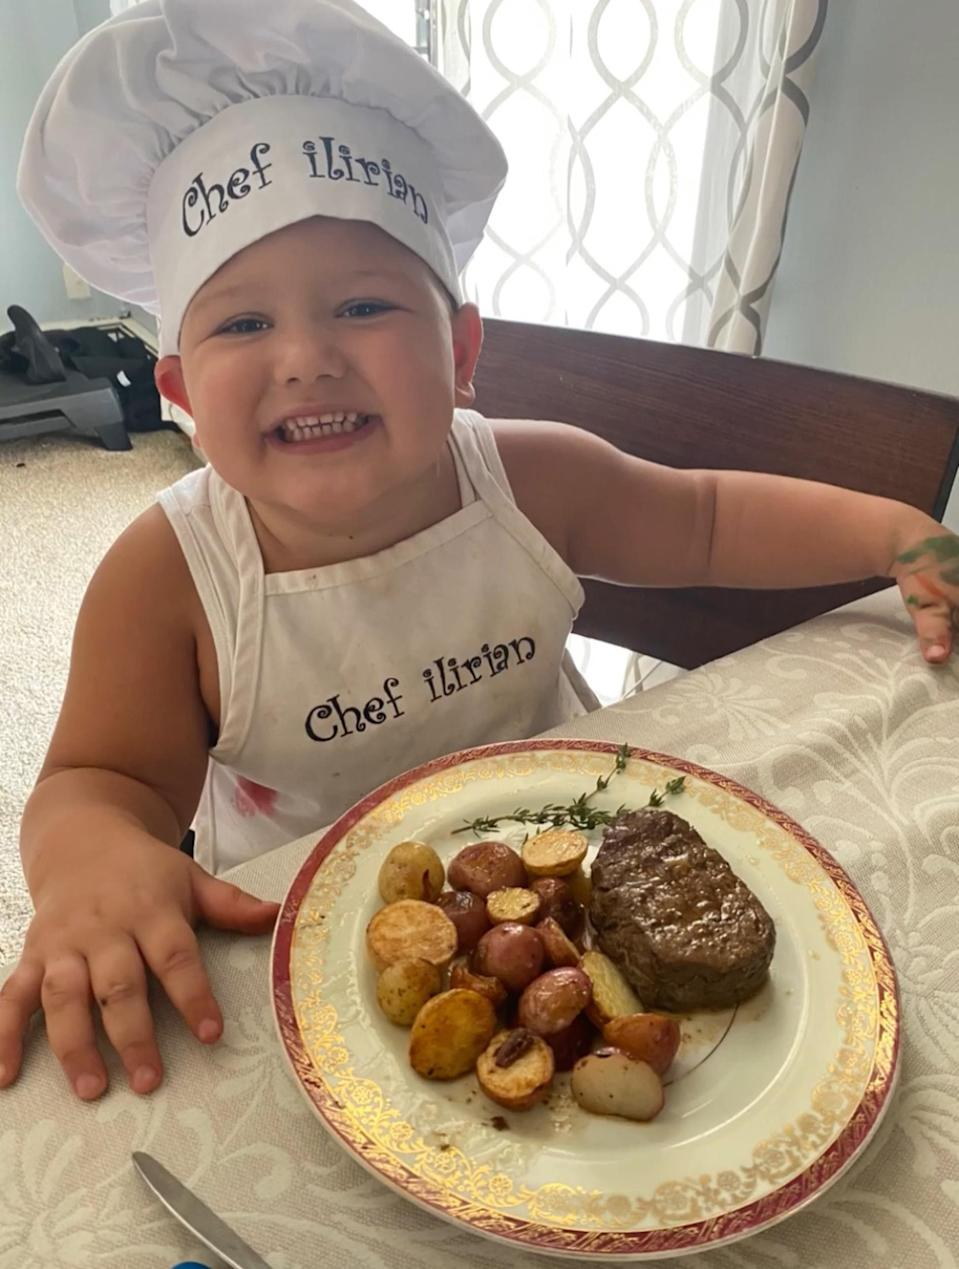 Chef Ilirian's favorite dish is filet mignon with a side of roasted potatoes. (Dorentina Kameraj)